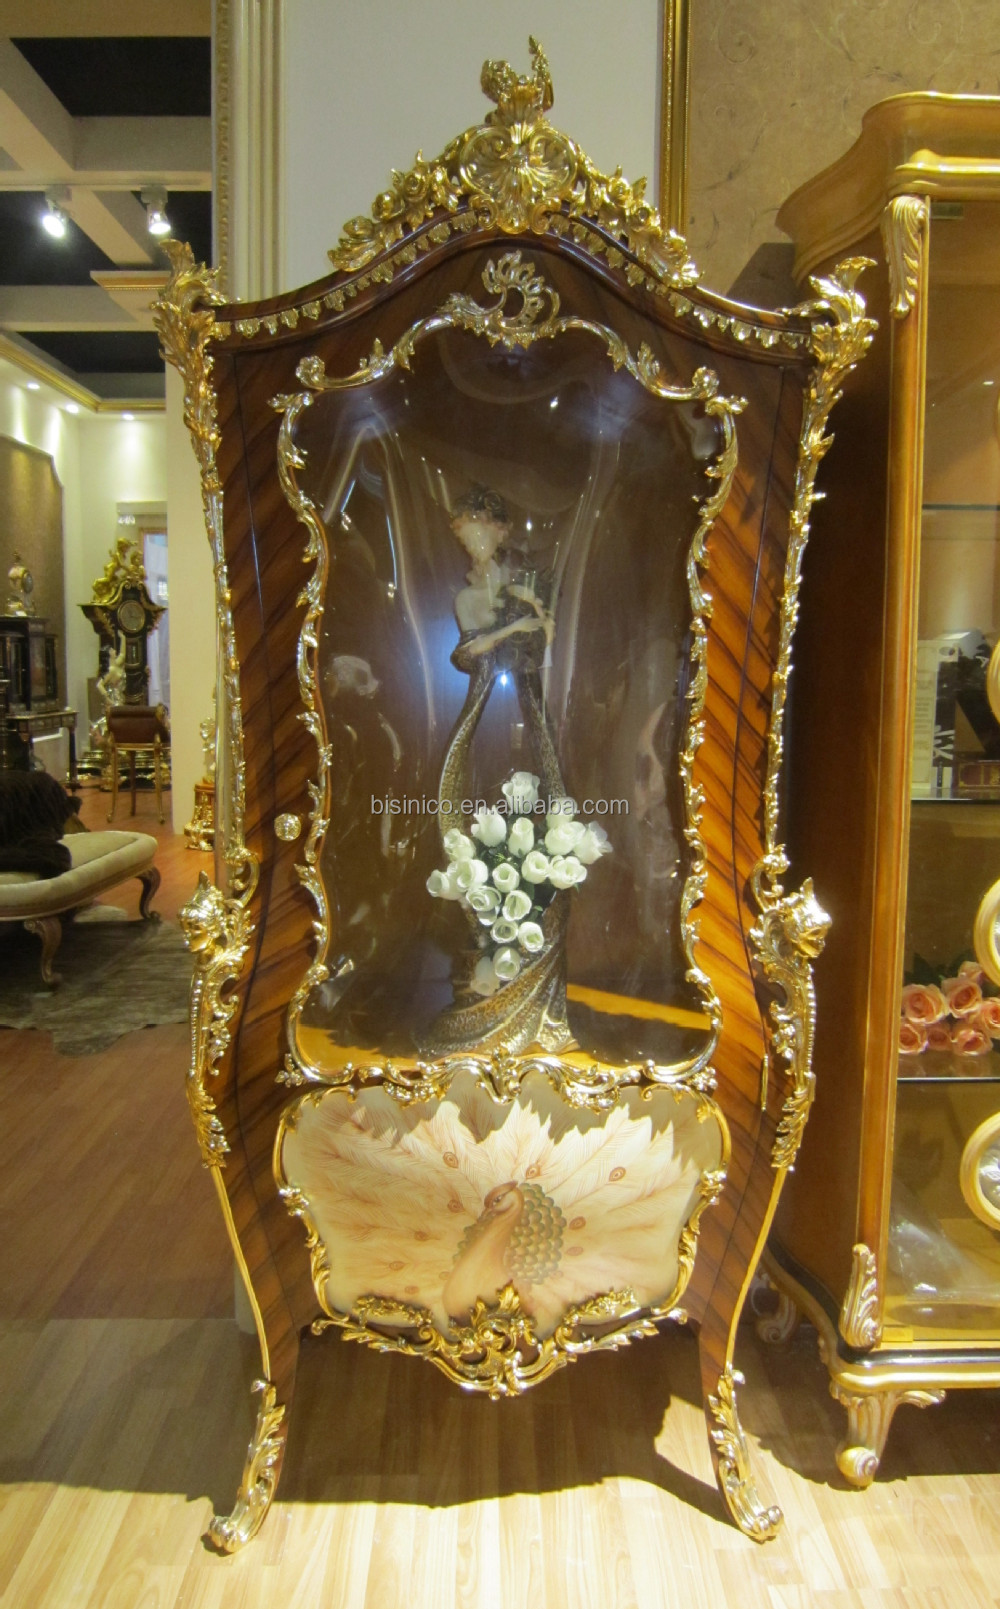 Luxury French Louis XV 24K Gold Plated Display Cabinet/European Elegant Peacock Decorative Wine Cabinet/ Retro Gilt Vitrine